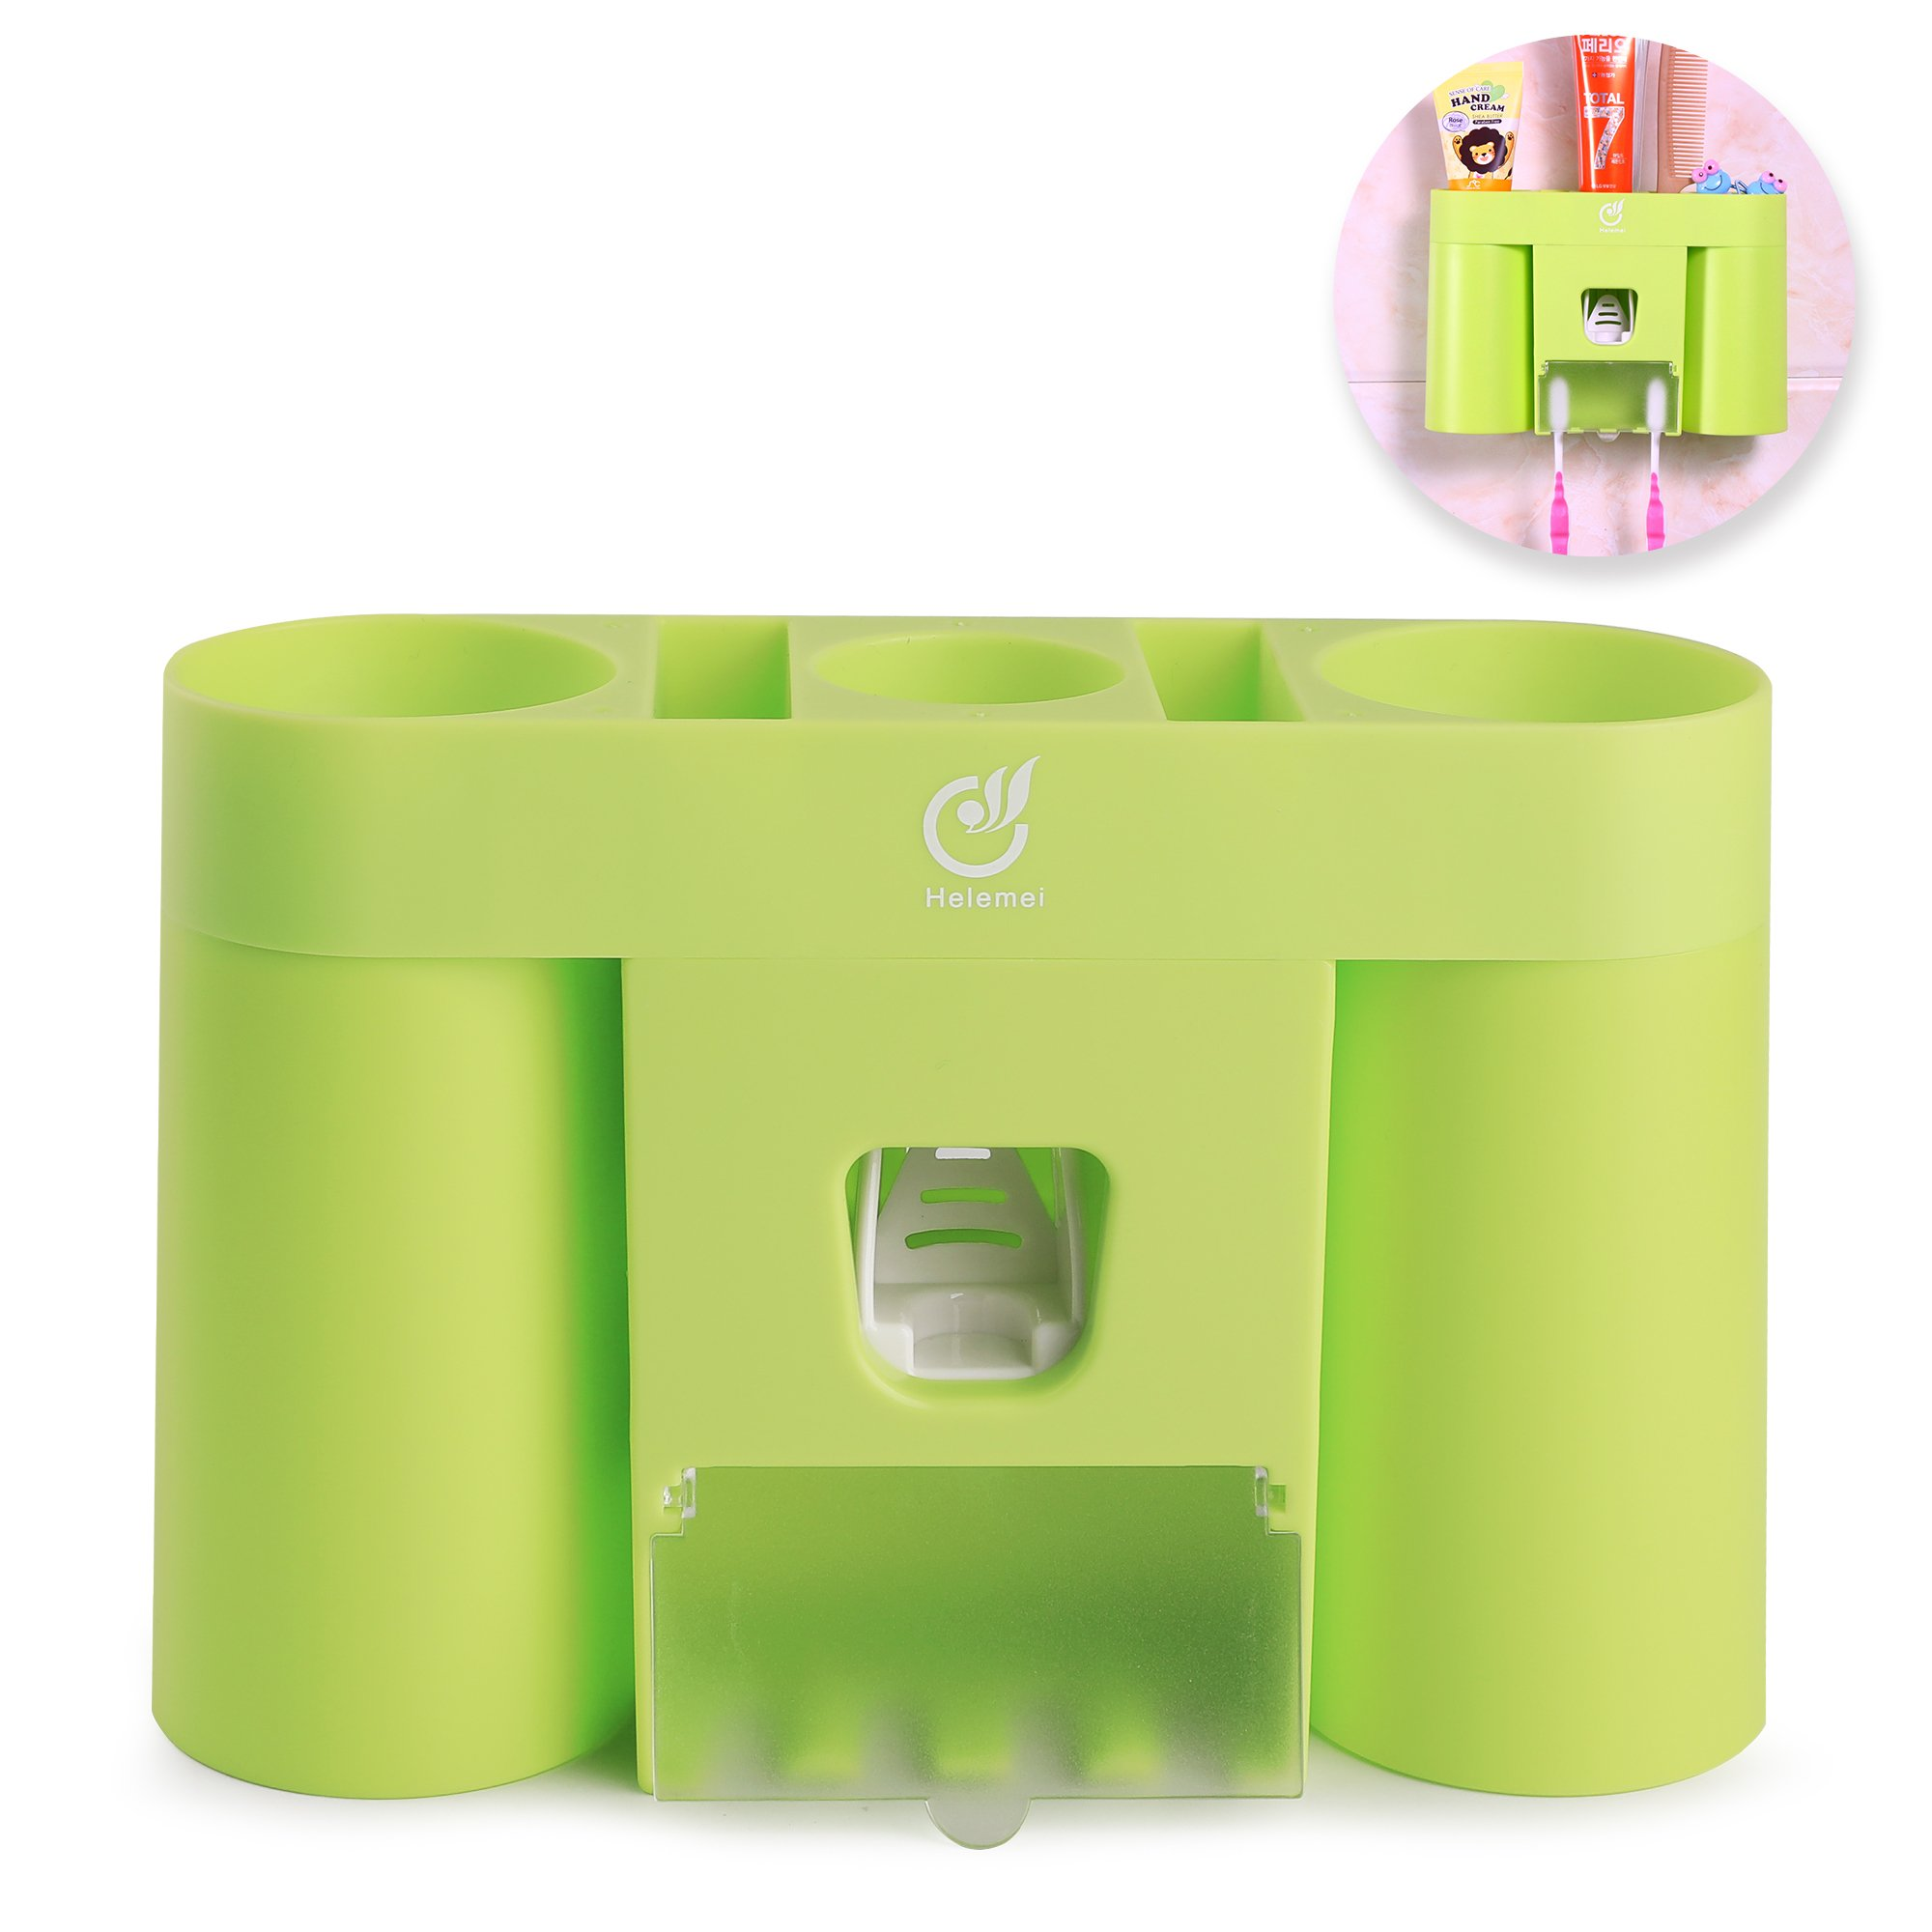 Wall Mounted Toothbrush Holder with Dustproof Cover, 2 Suction Cups, Automatic Toothpaste Dispenser Squeezer for Dental Oral Care Bathroom Accessories Storage Organizer Set (Grass green)